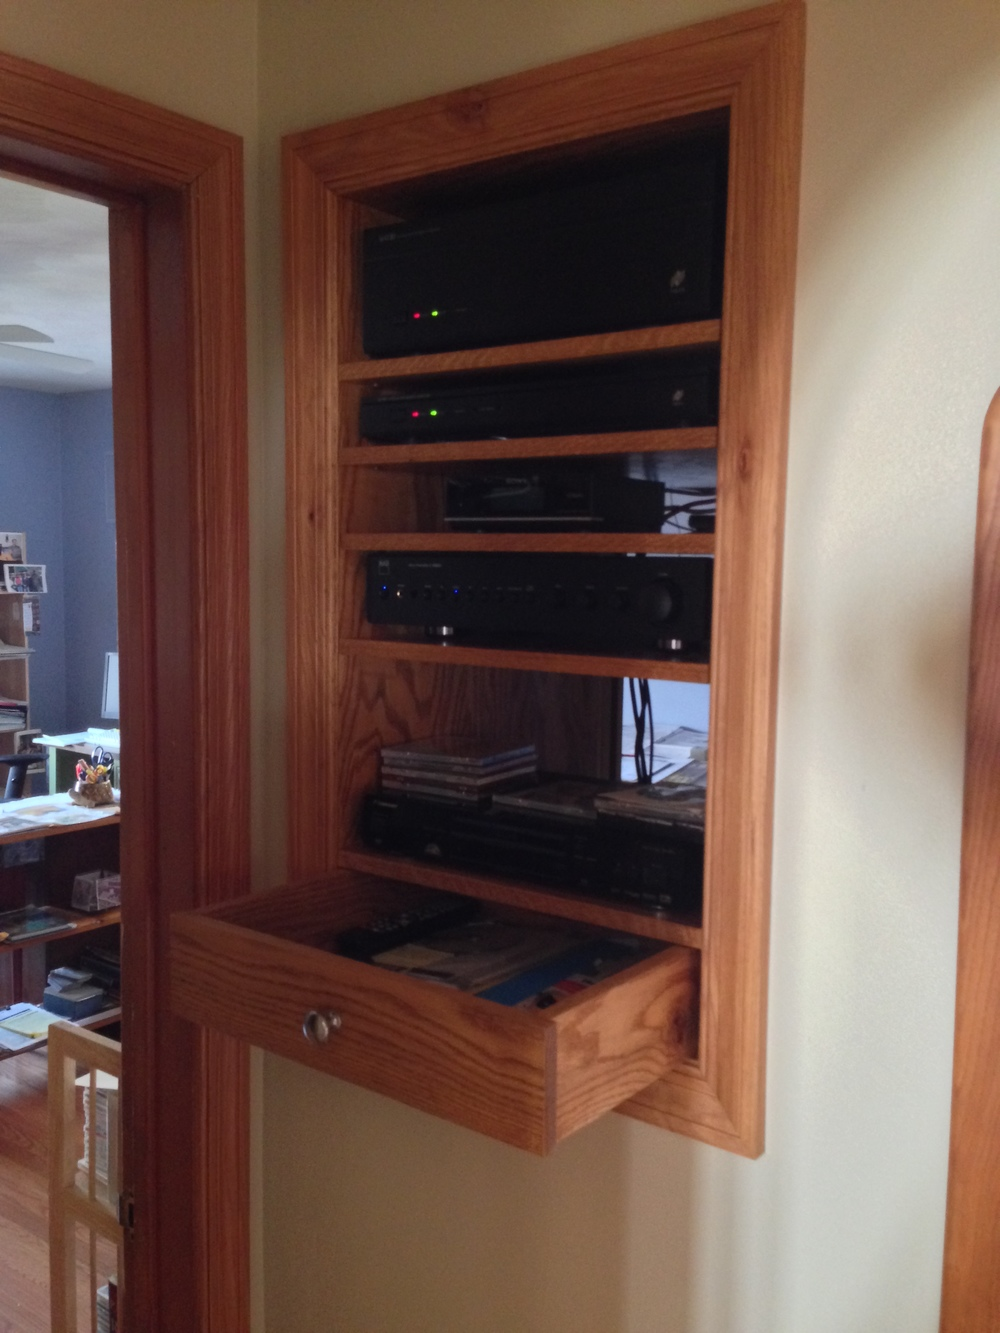 On This Project, The Client Wanted A Centrally Located Stereo System That  Would Not Take Up Floor Space In Their Home. I Found A Spot In Their  Hallway That ...